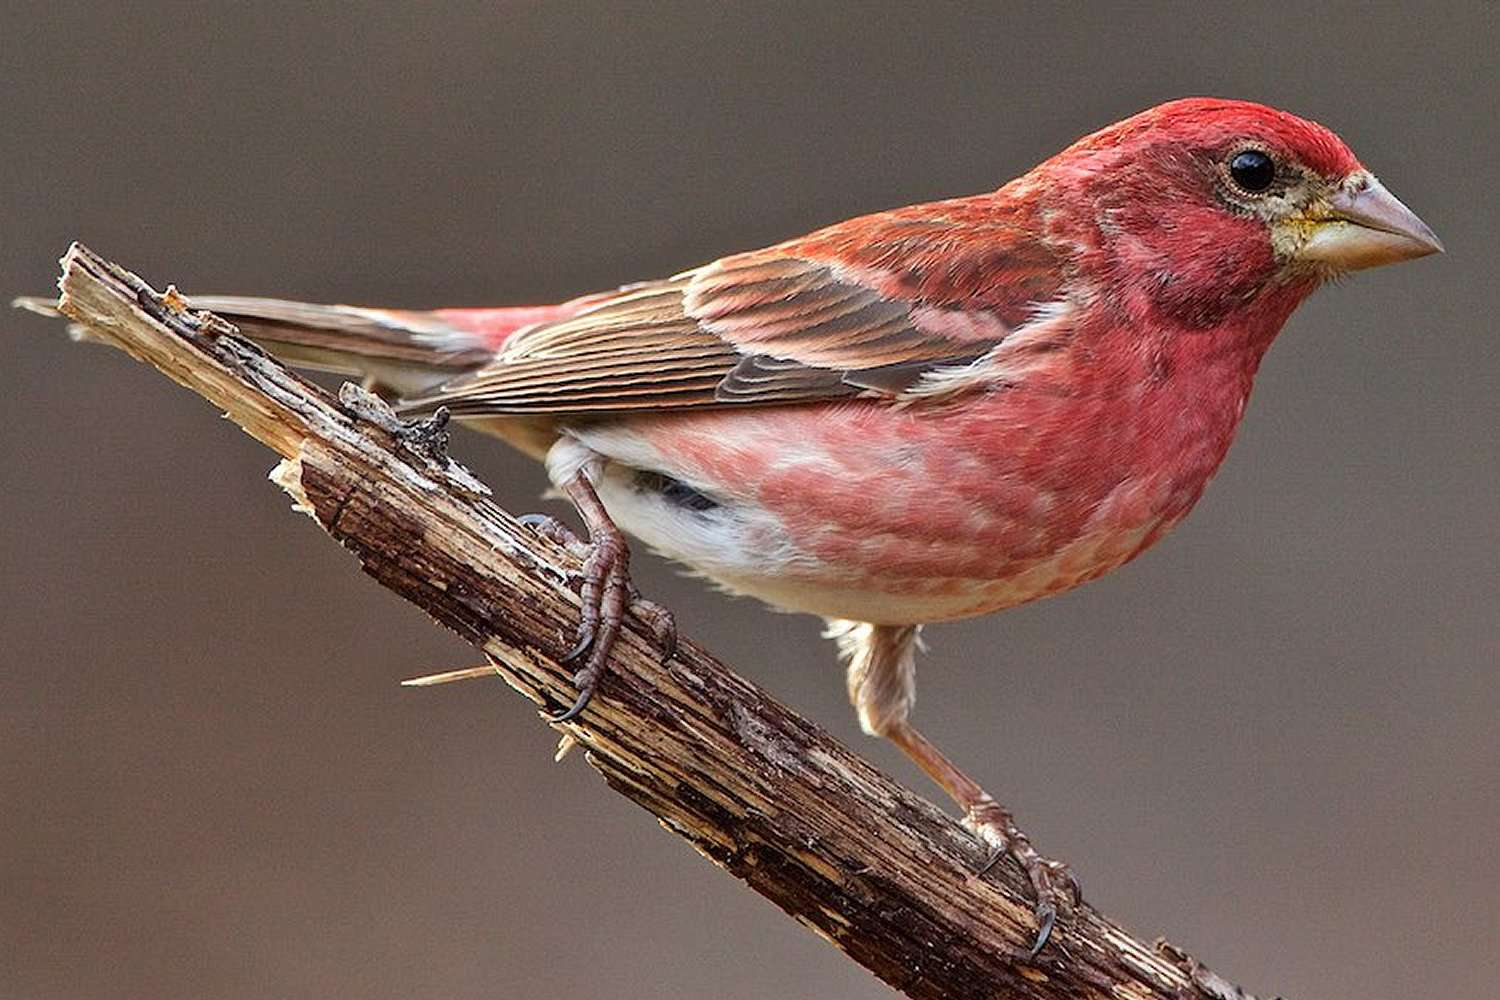 Purple Finch, el pájaro estatal de New Hampshire, en una rama.